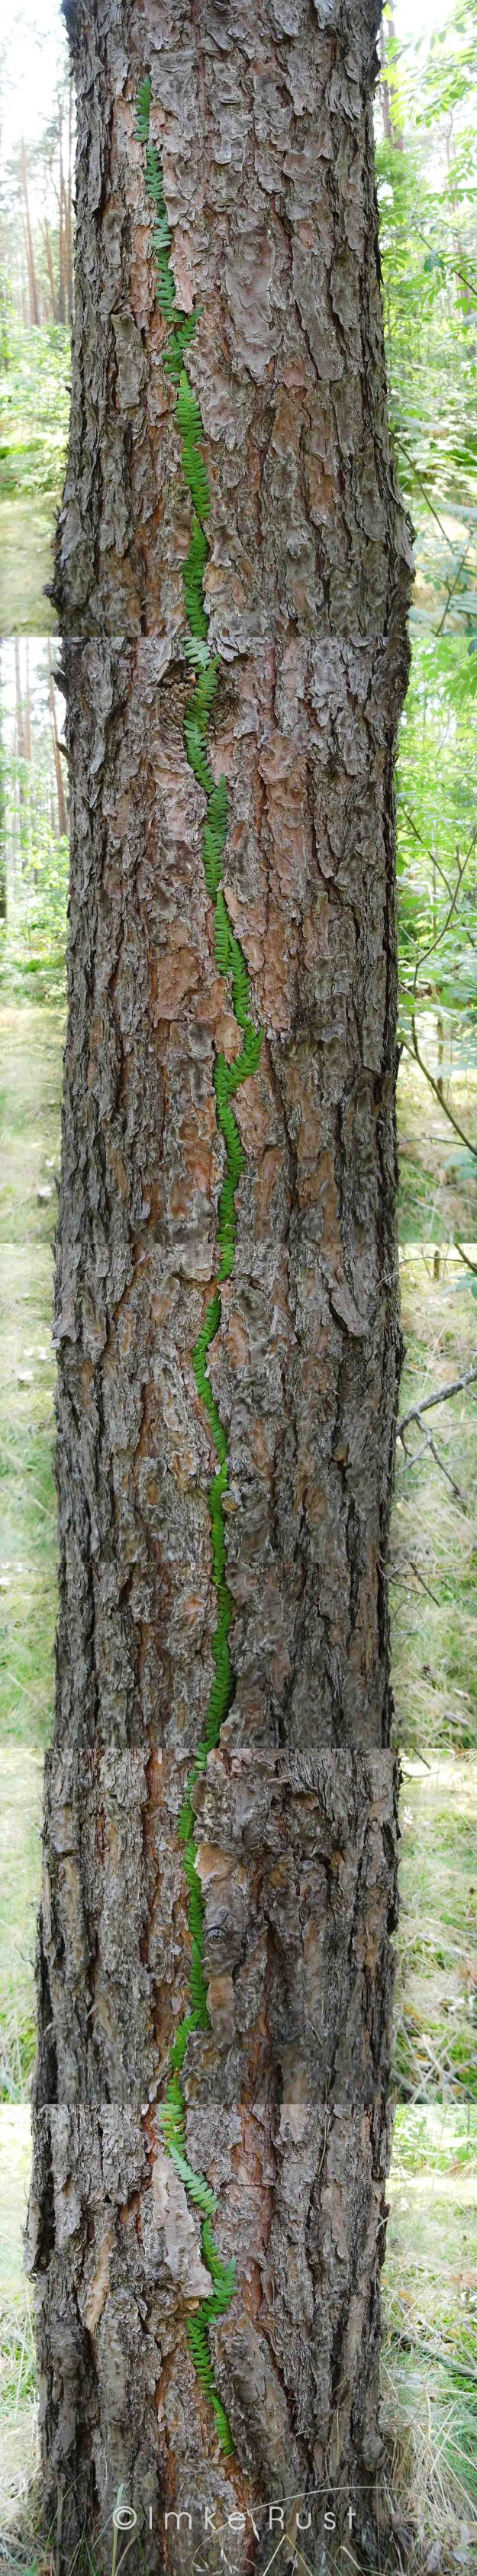 Scrolling up and down the green line on the bark of the tree (the line is about 2m long )